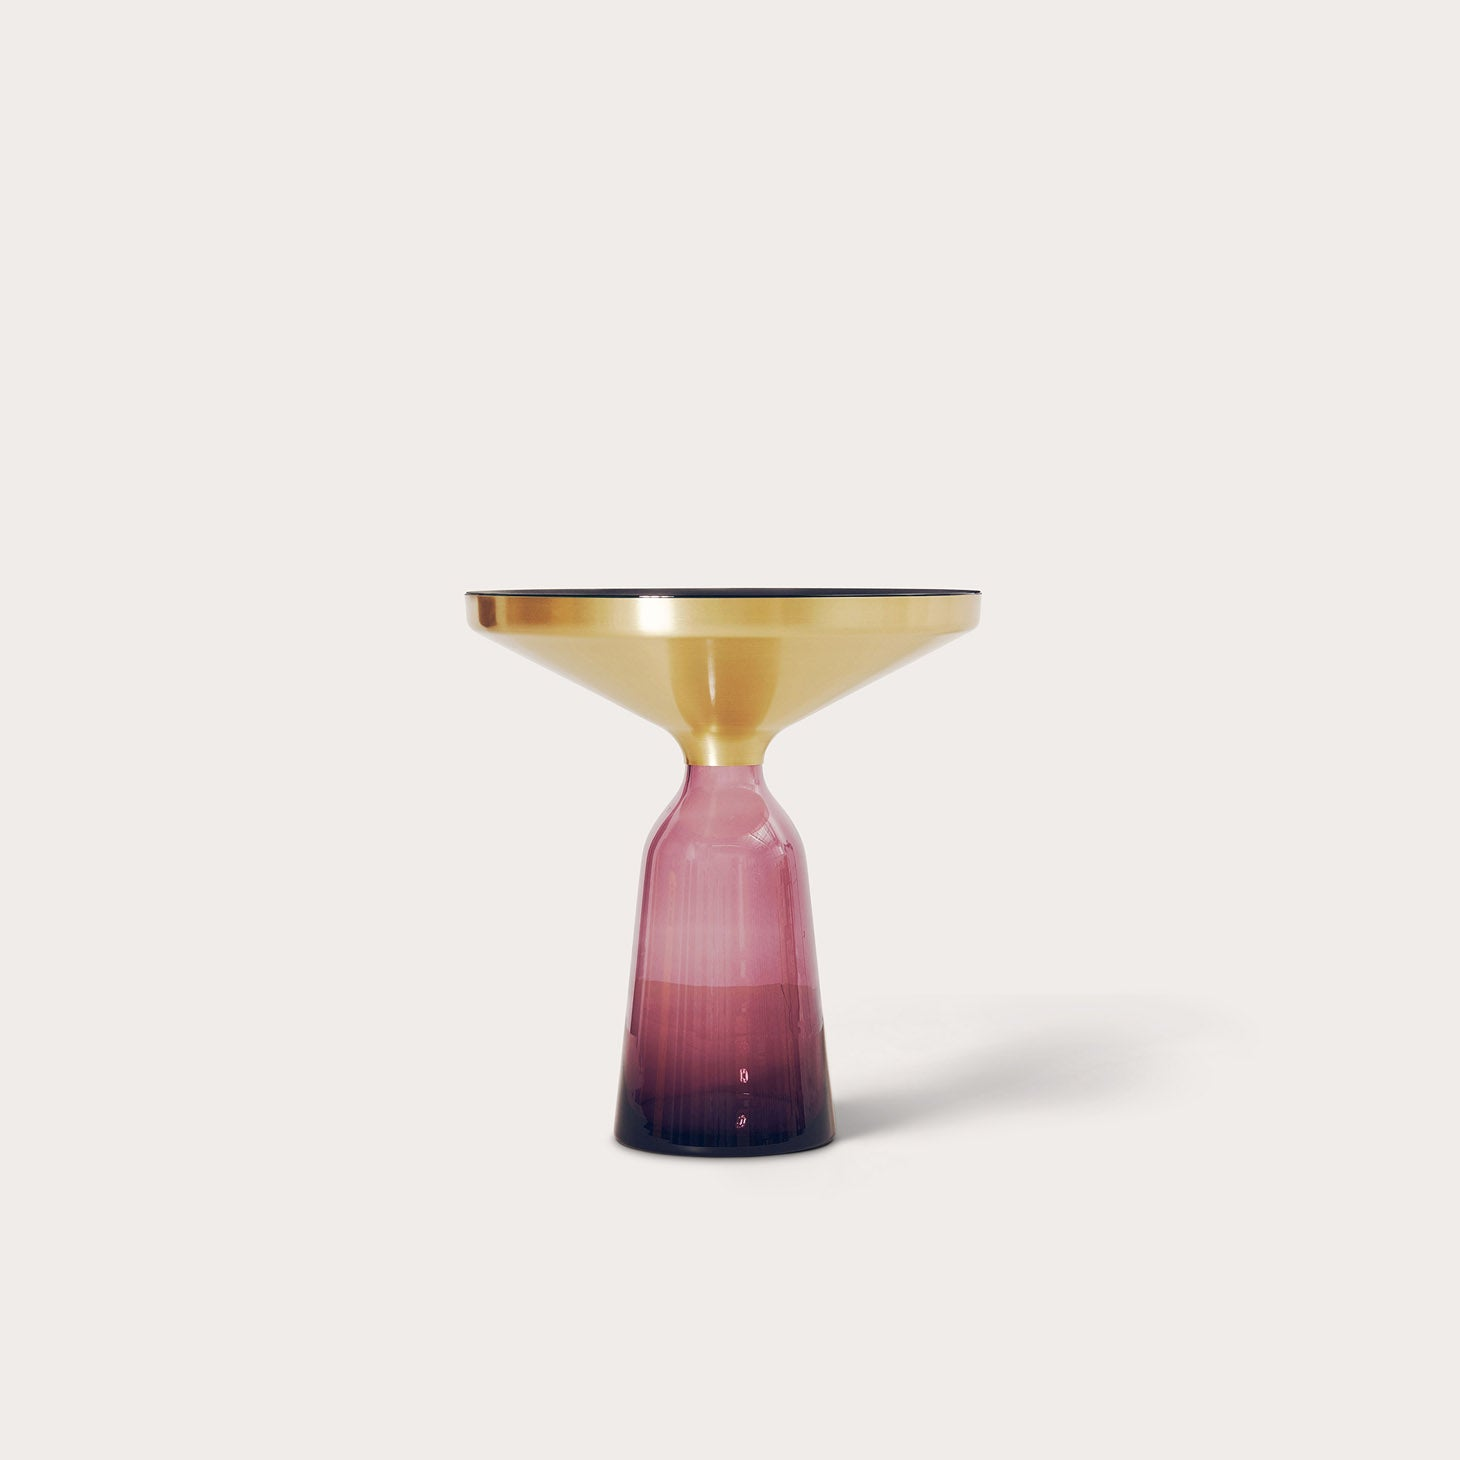 Bell Table Tables Sebastian Herkner Designer Furniture Sku: 001-230-10164